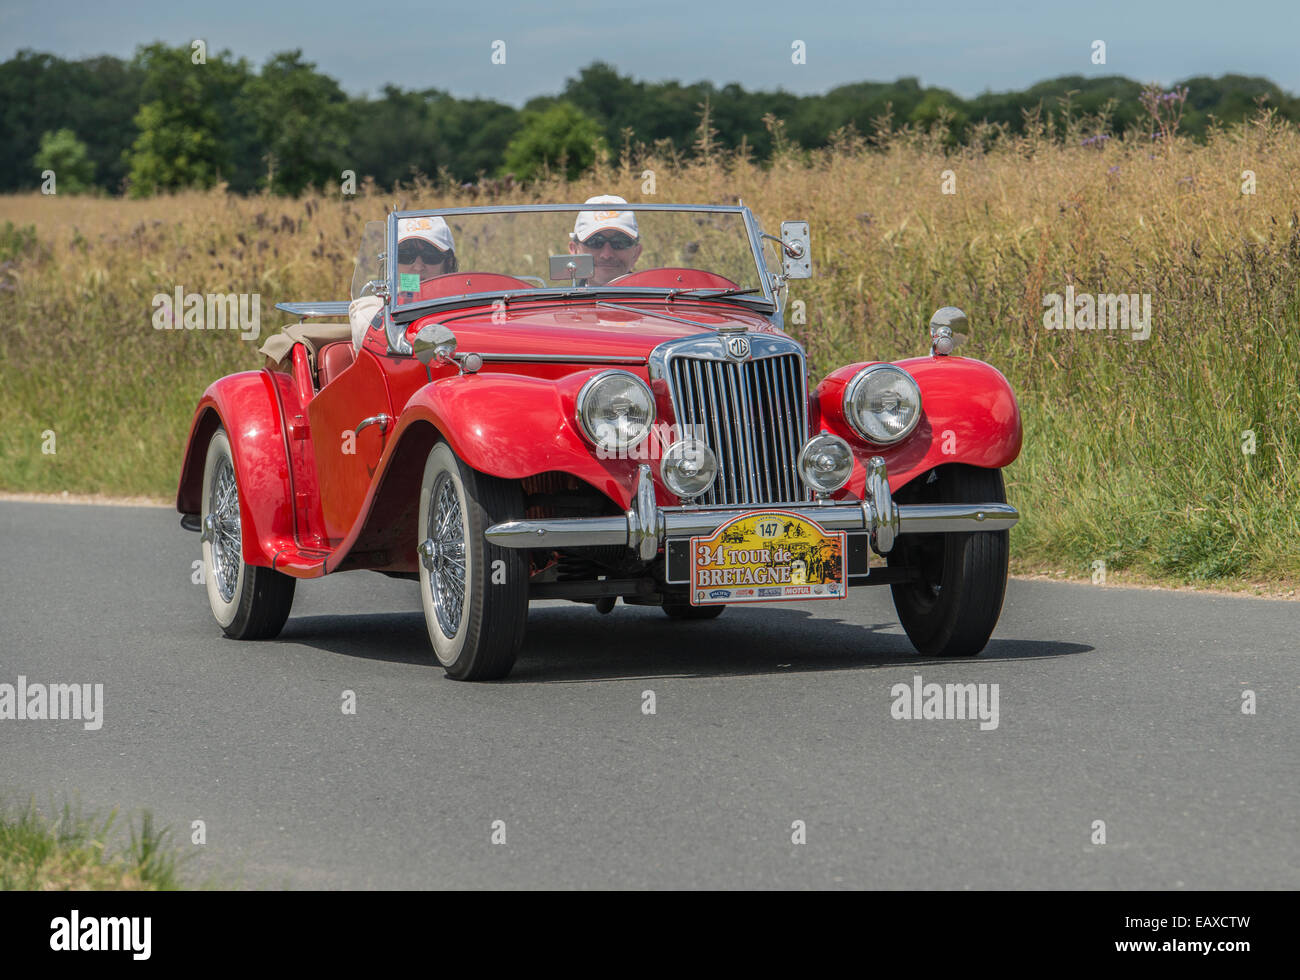 MG TF 1500 Roadster of 1954 in the Tour de Bretagne 2014, France - Stock Image